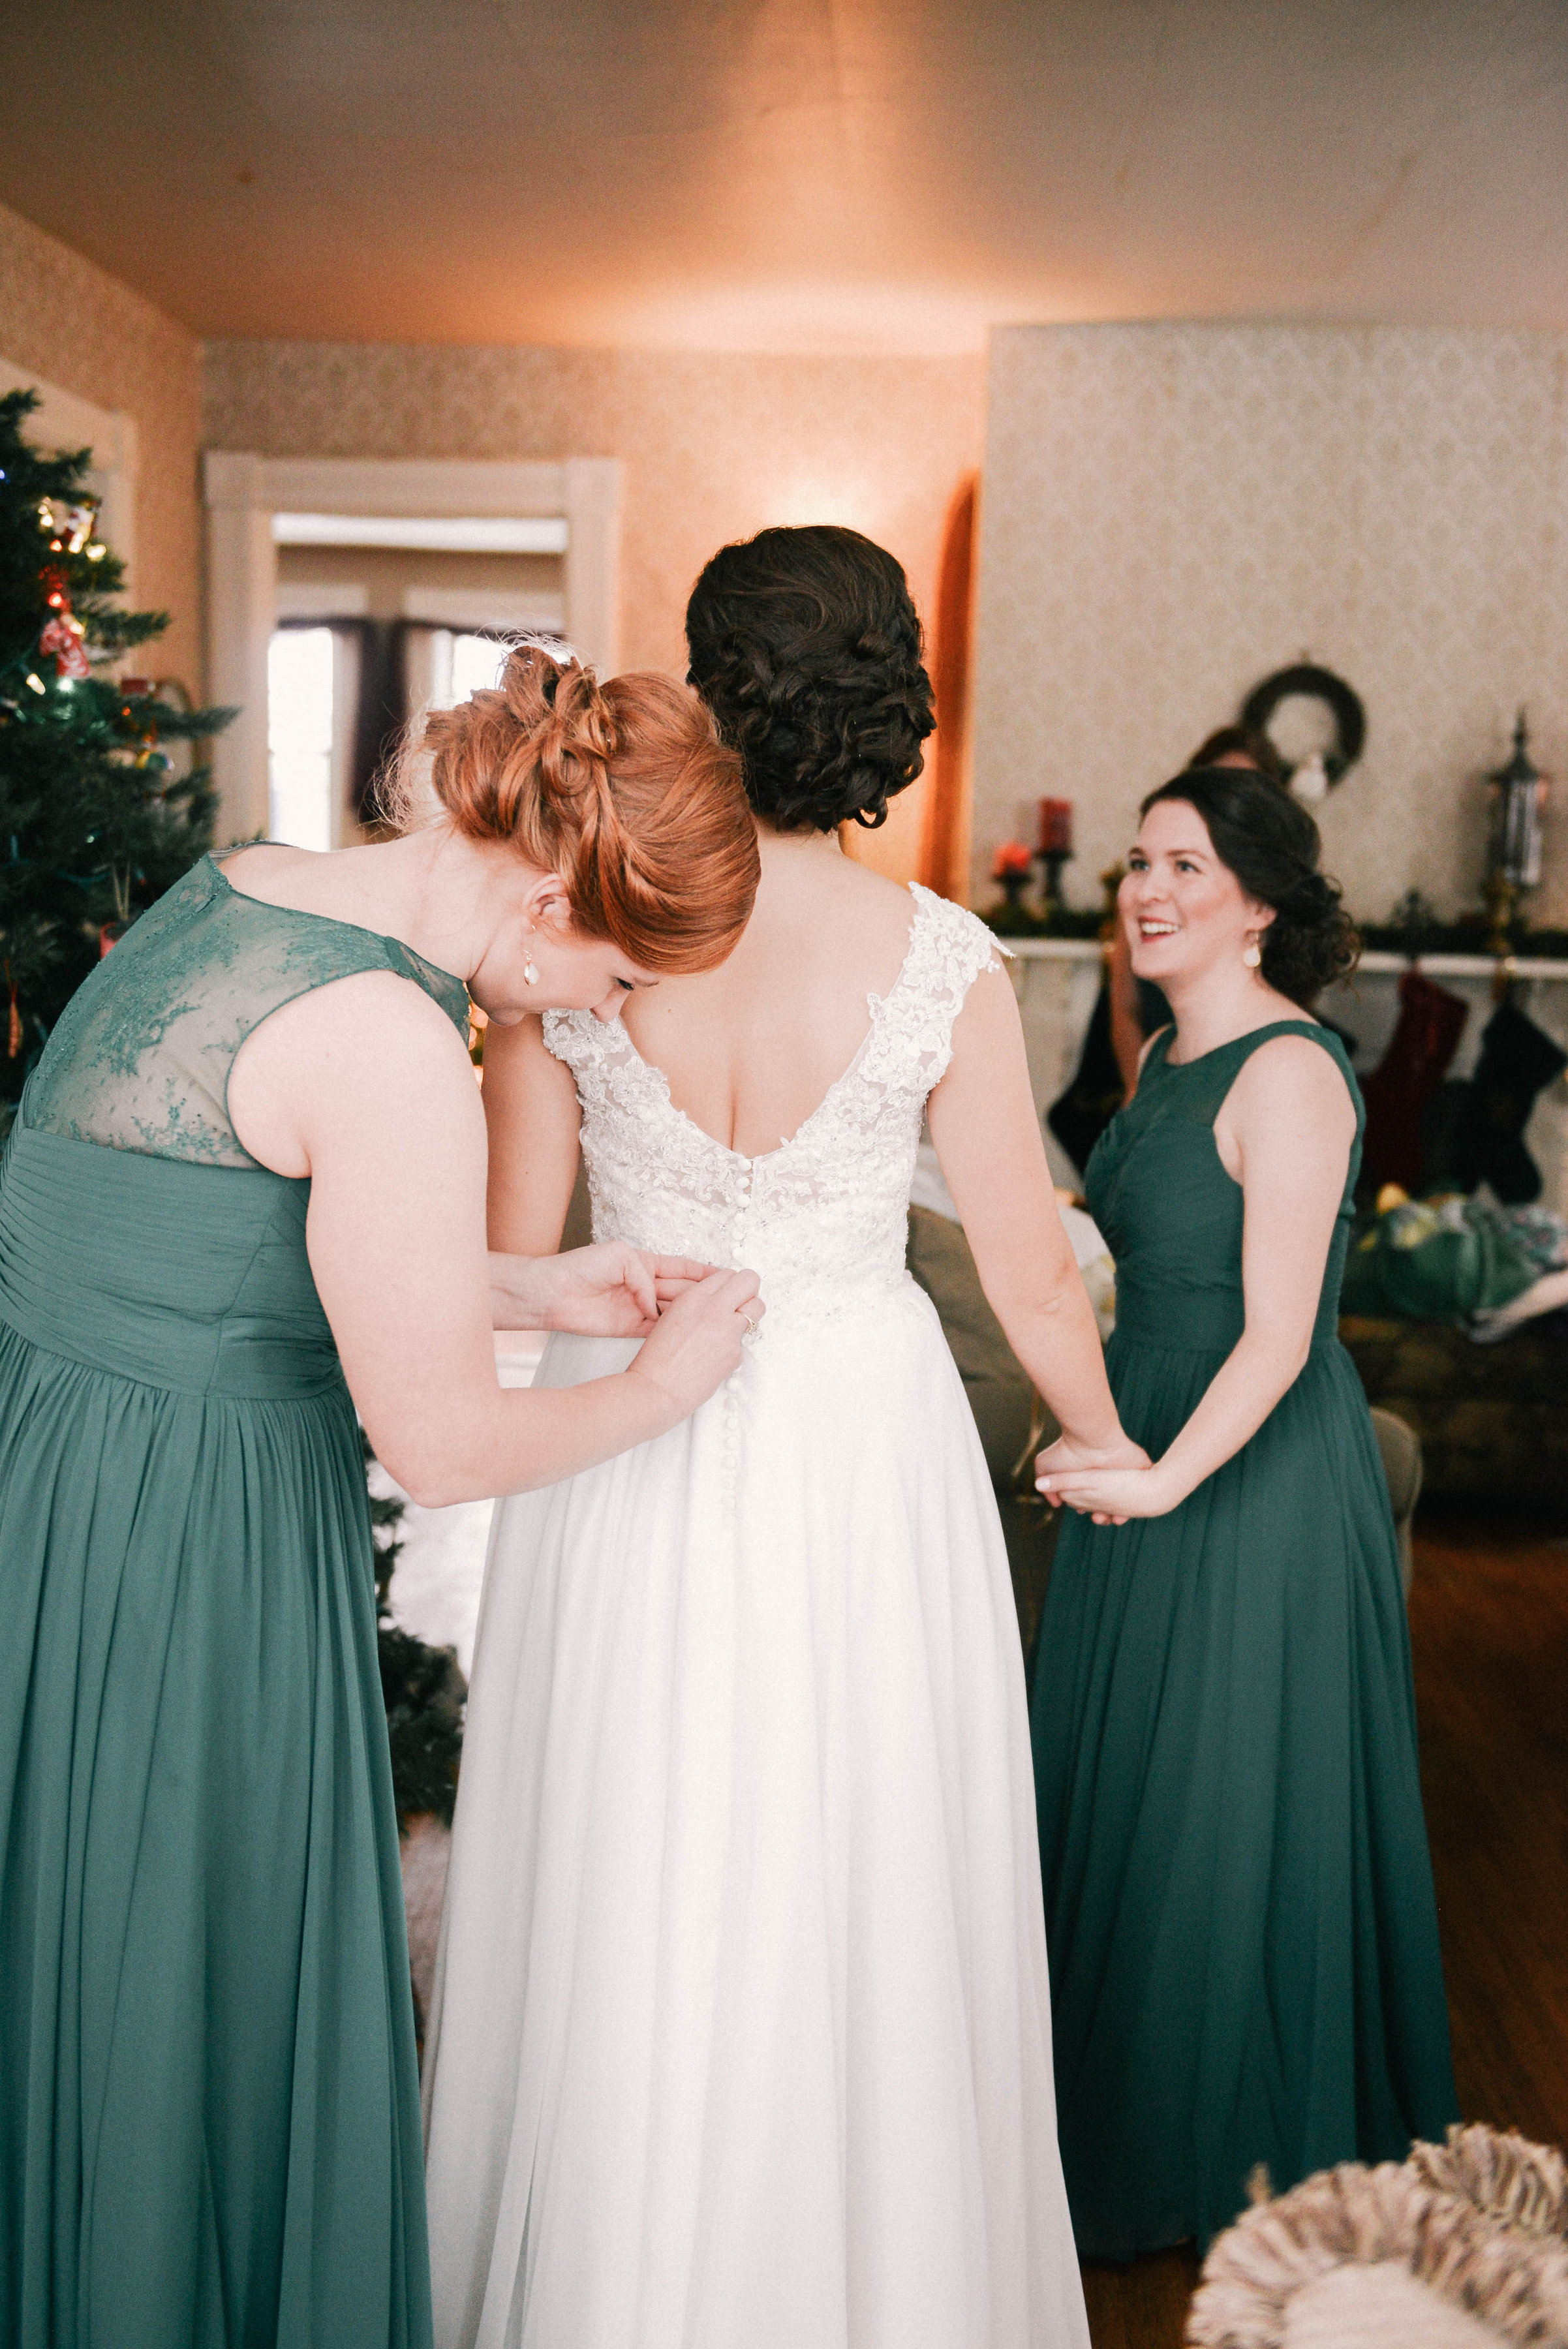 bride and bridesmaids getting ready in her home in cedar falls iowa during a winter wedding